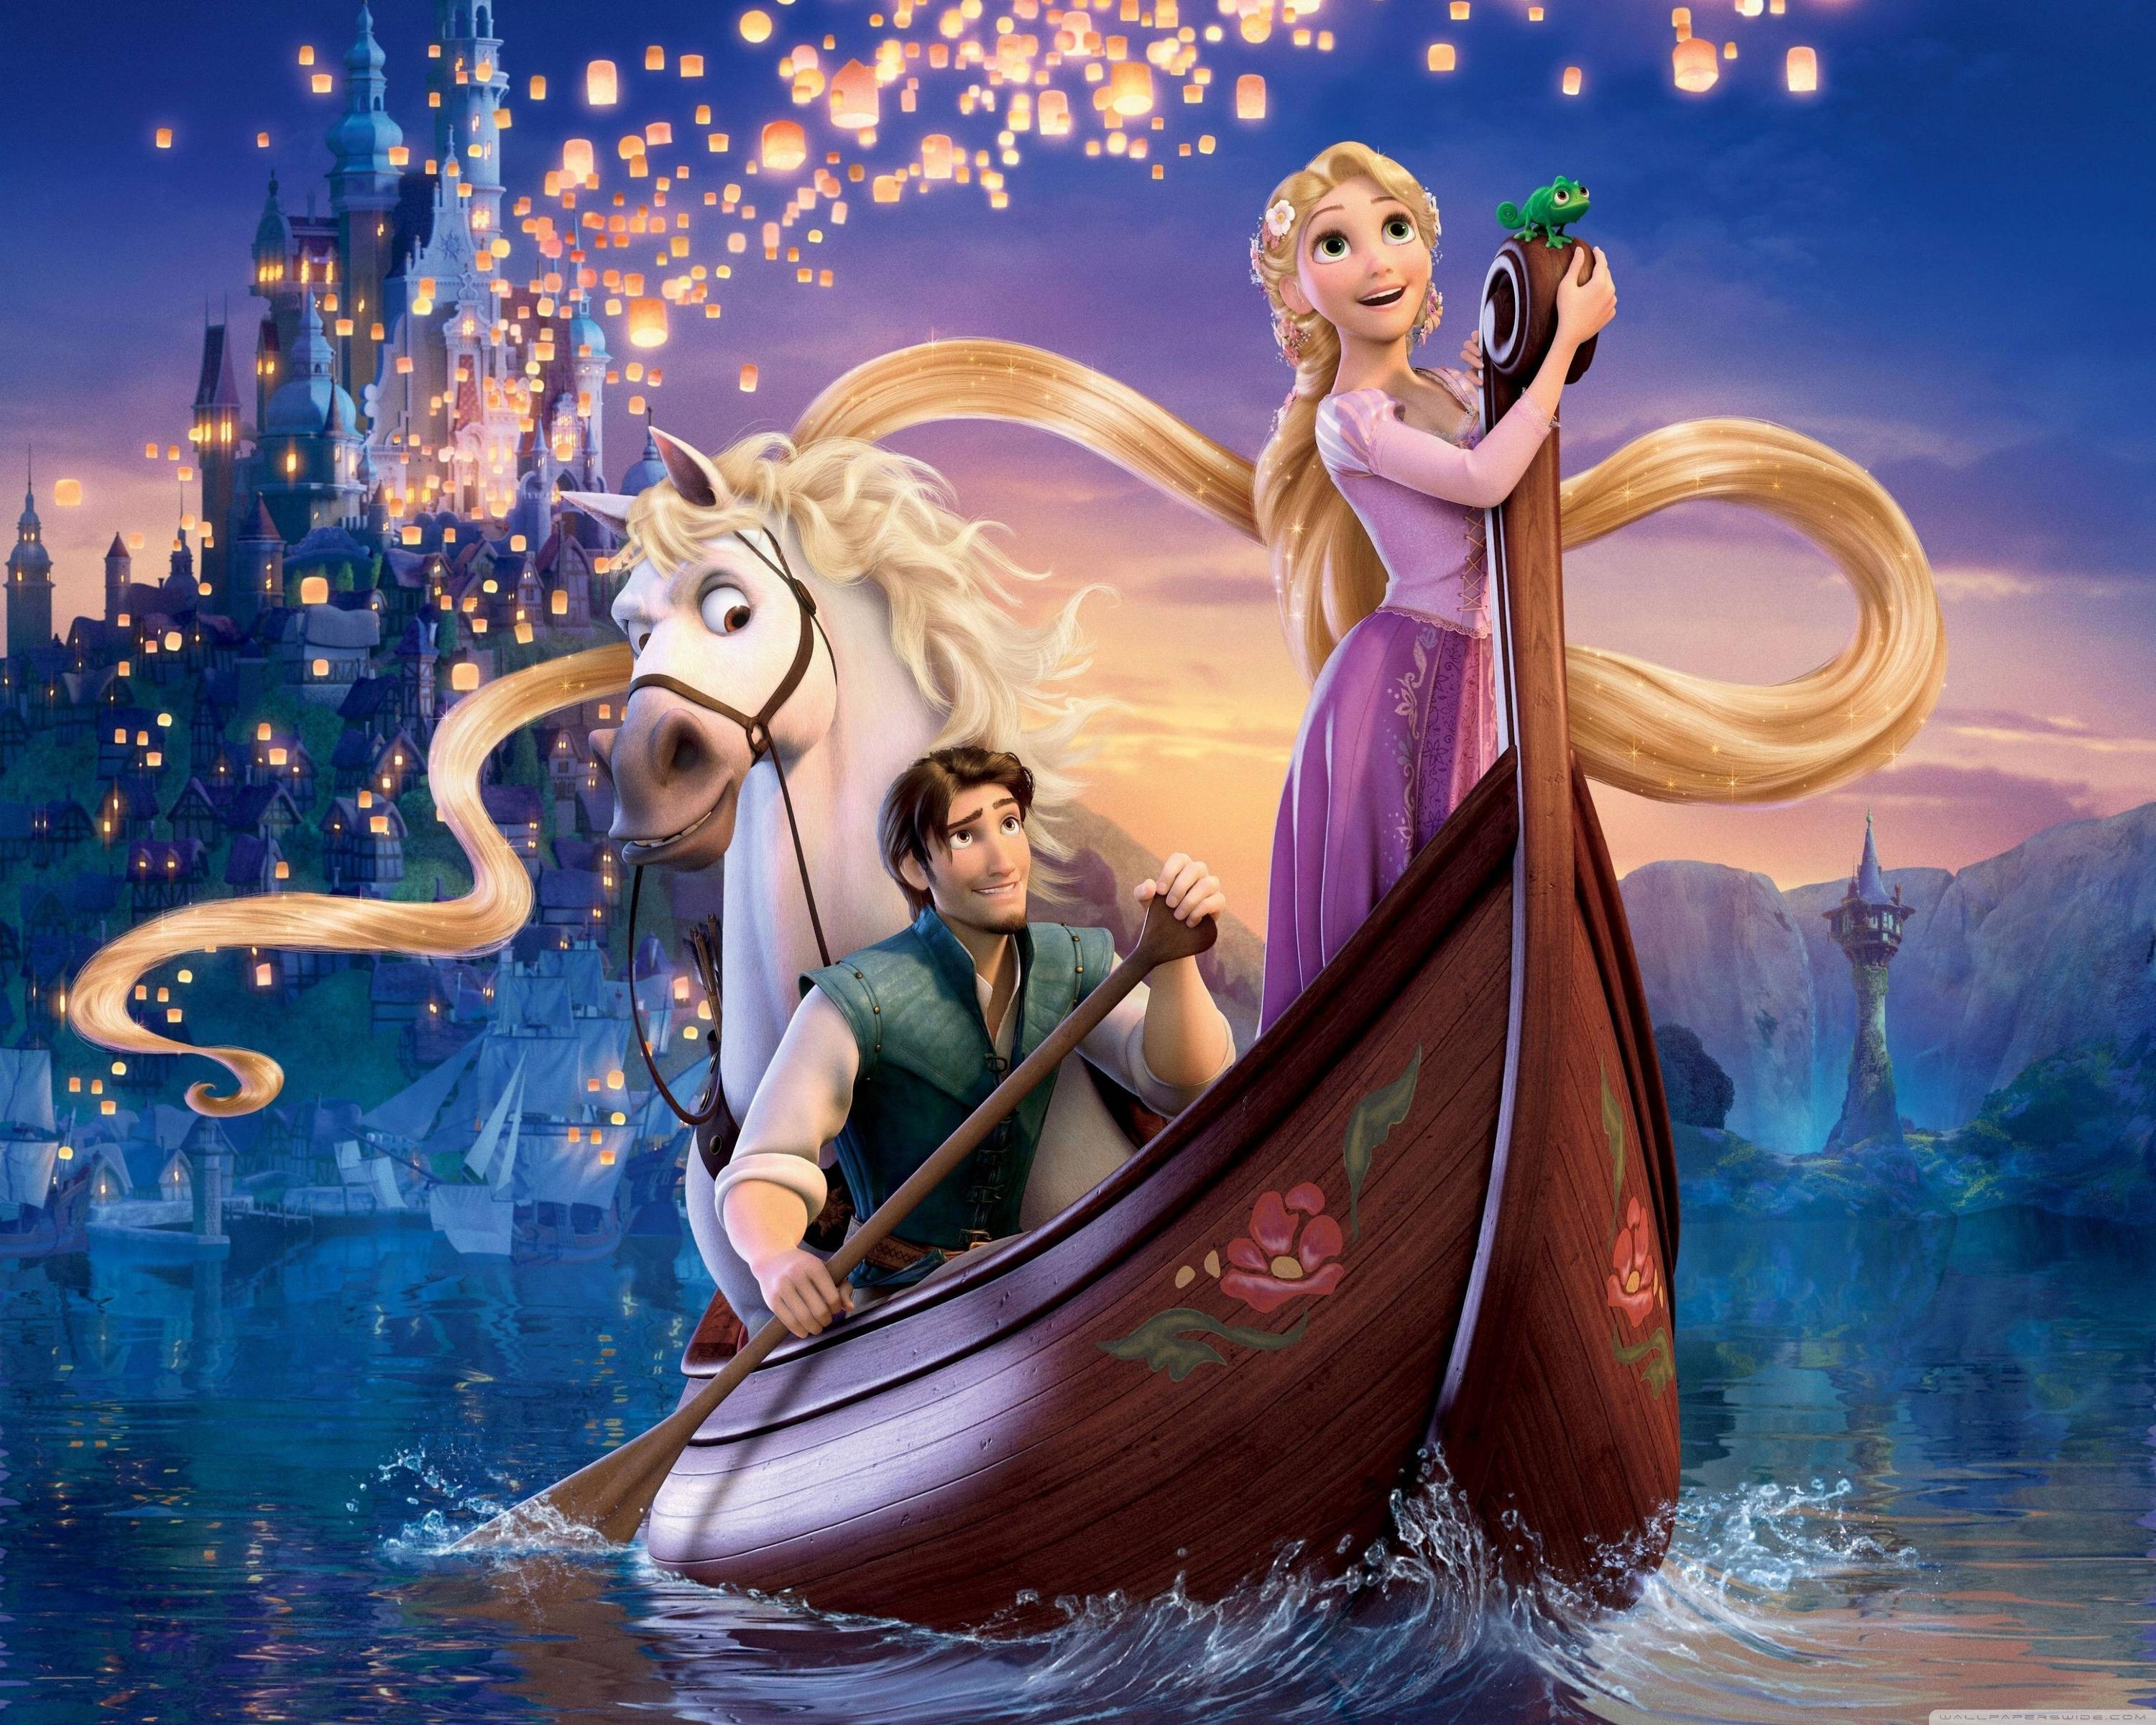 Tangled Rapunzel Wallpapers - Viewing Gallery